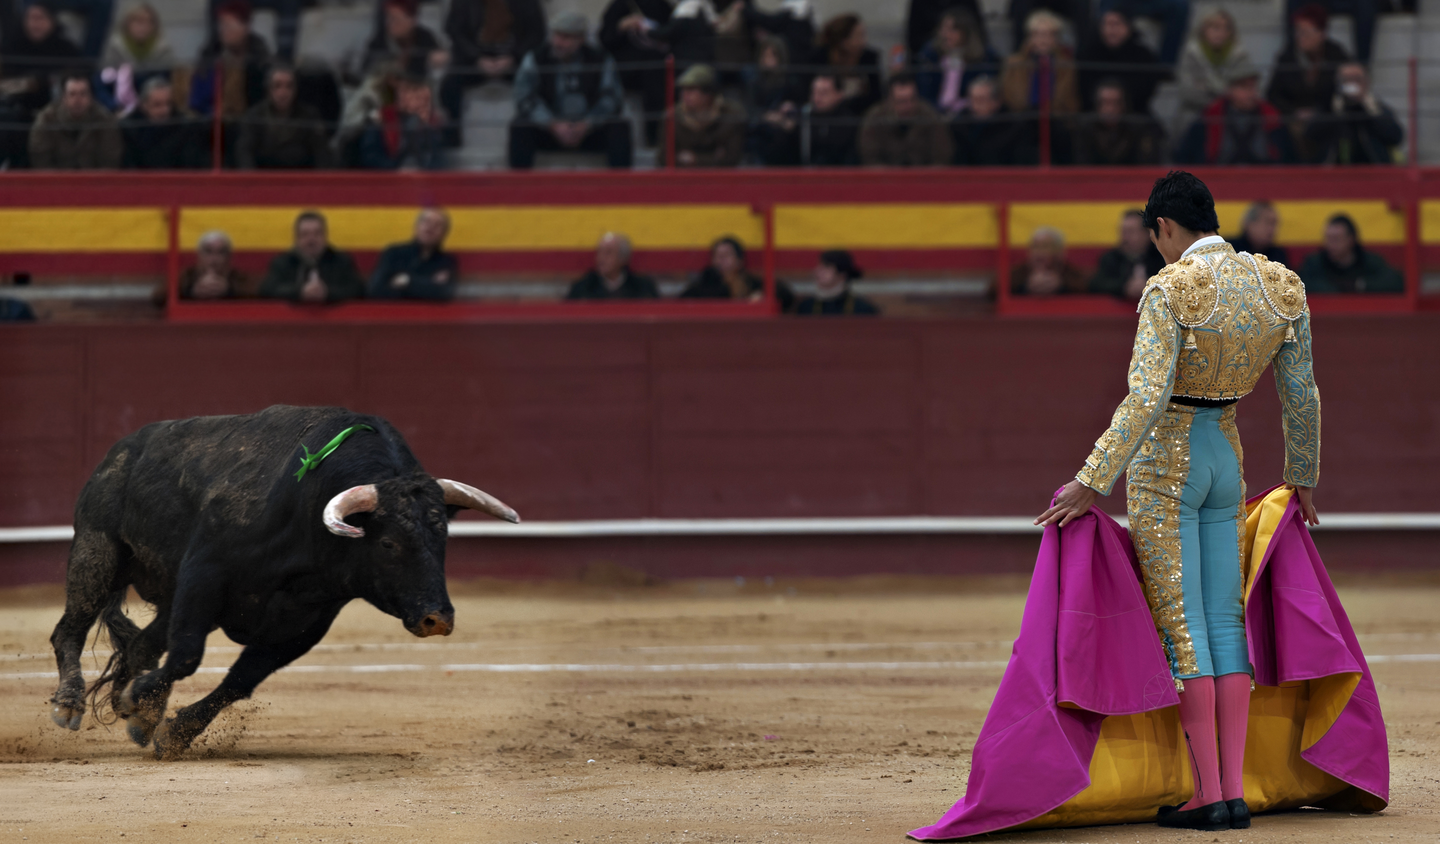 What I learned about my Catholic faith from watching a bullfight ...